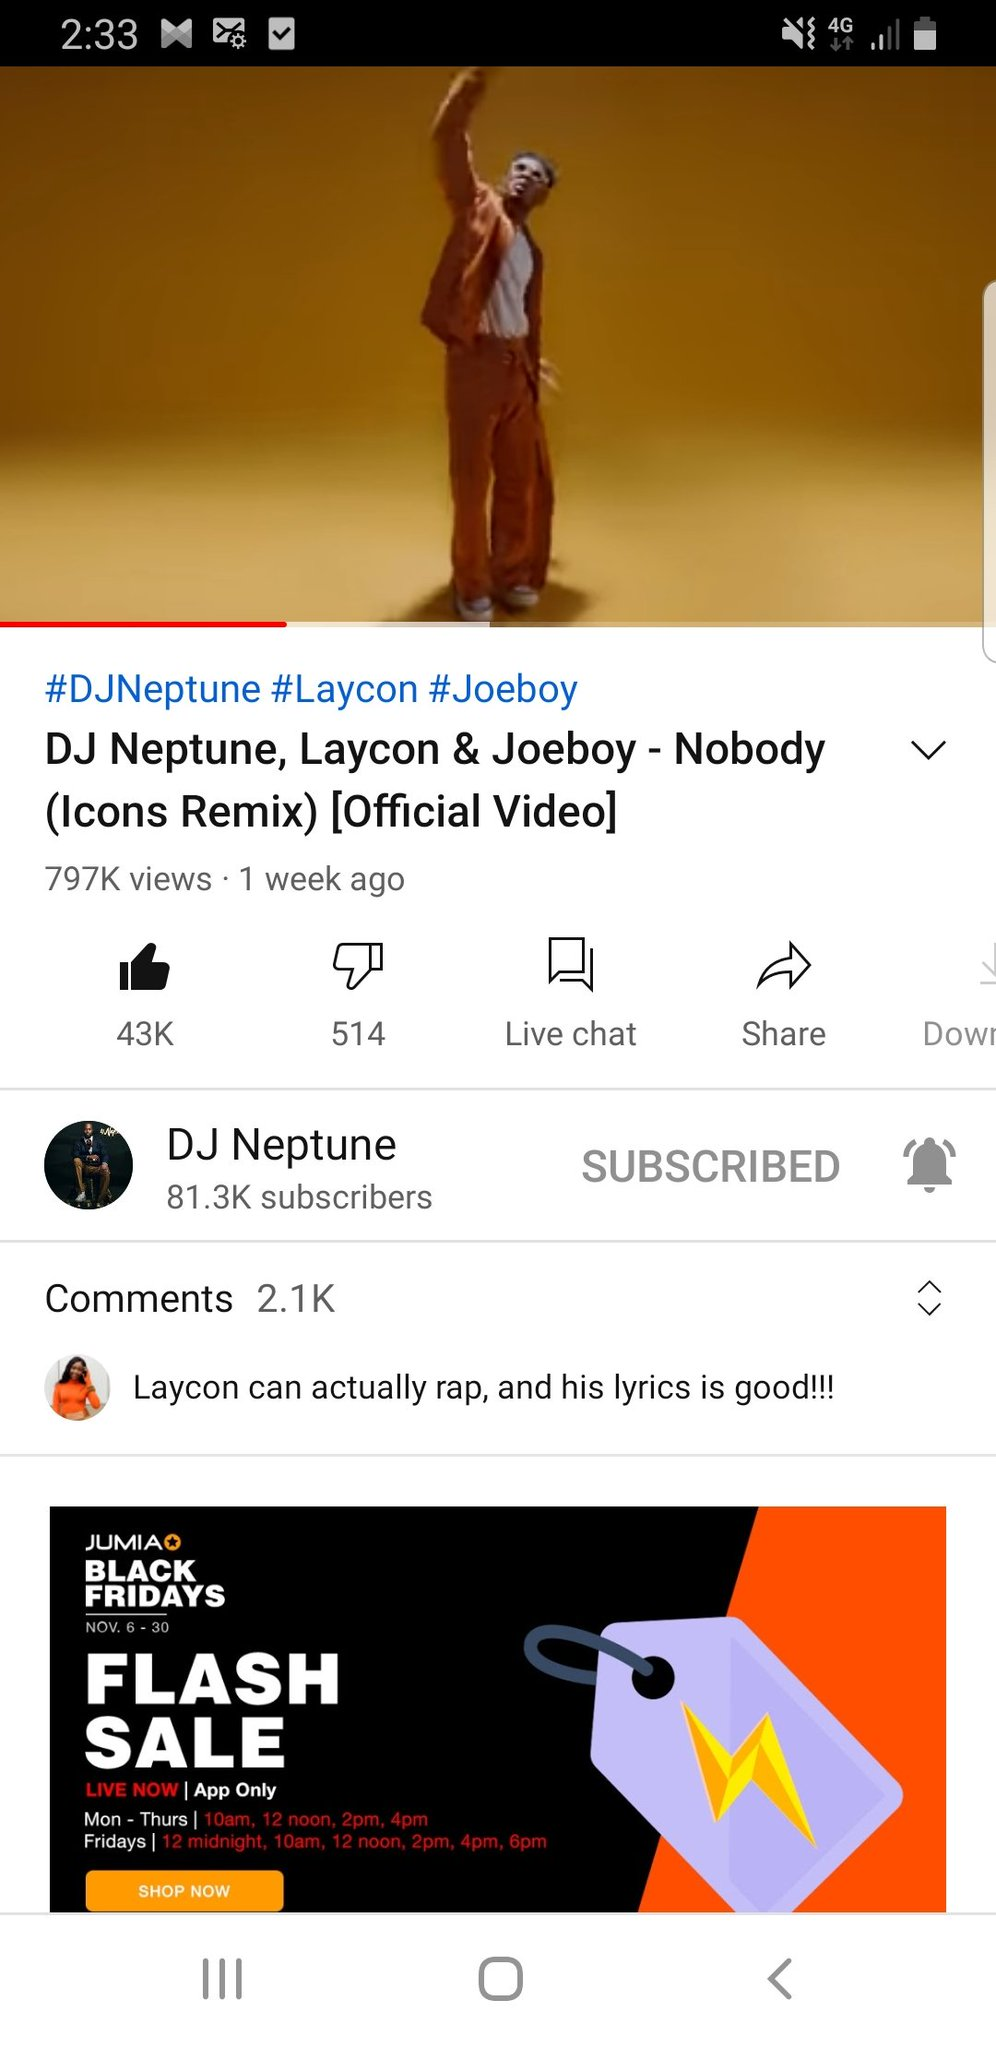 Afm Empire On Twitter While Waiting For Hiphop Video Icons Let Stream Nobody Icon Remix Video To 1m Bfore Wednesday Hiphopvideooutsoon International disc jockey, dj neptune unlocks a catchy music video to his evergreen song titled 'nobody'. twitter